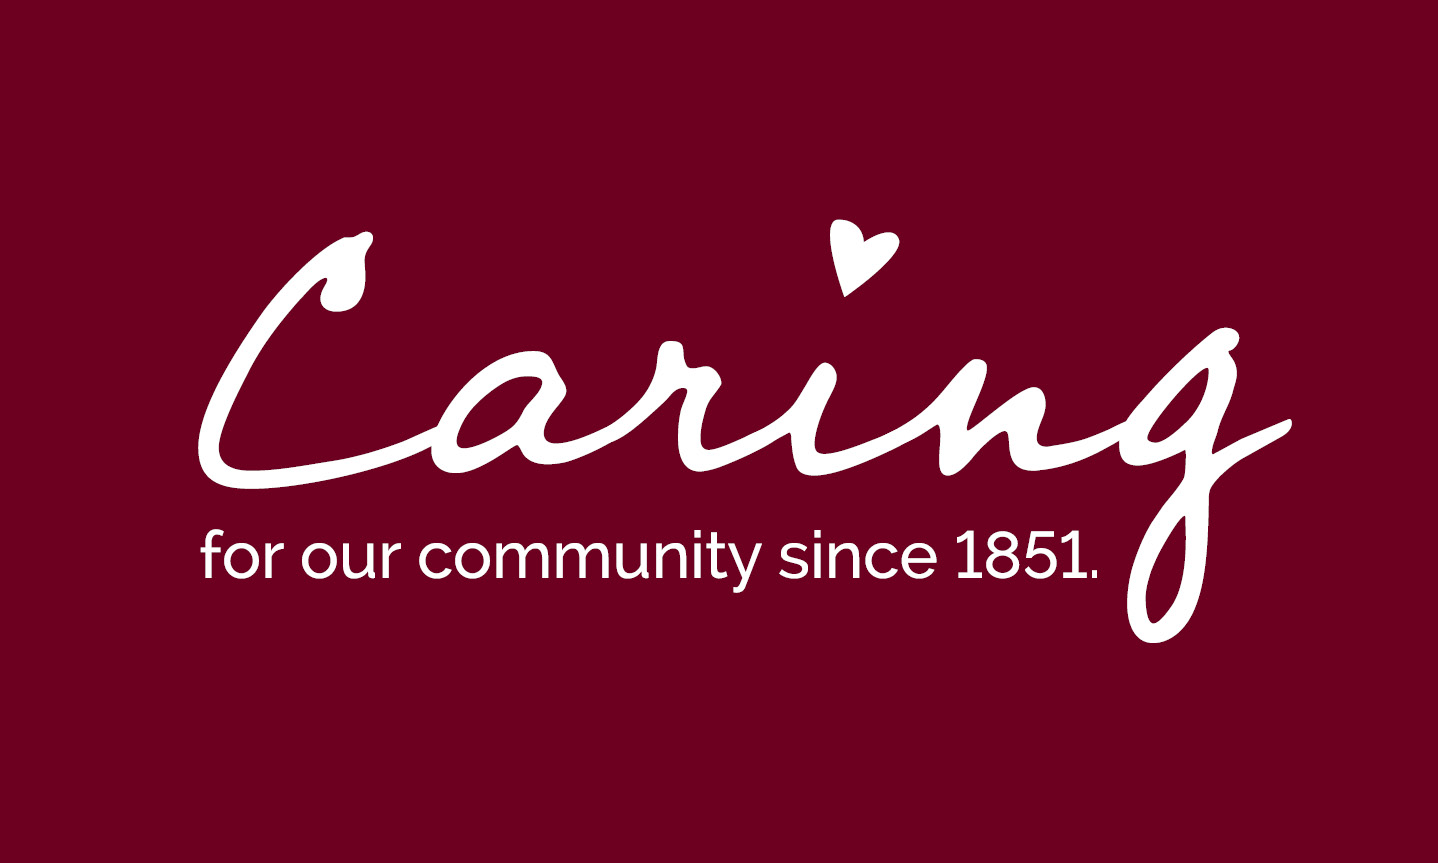 Caring for our communities since 1851